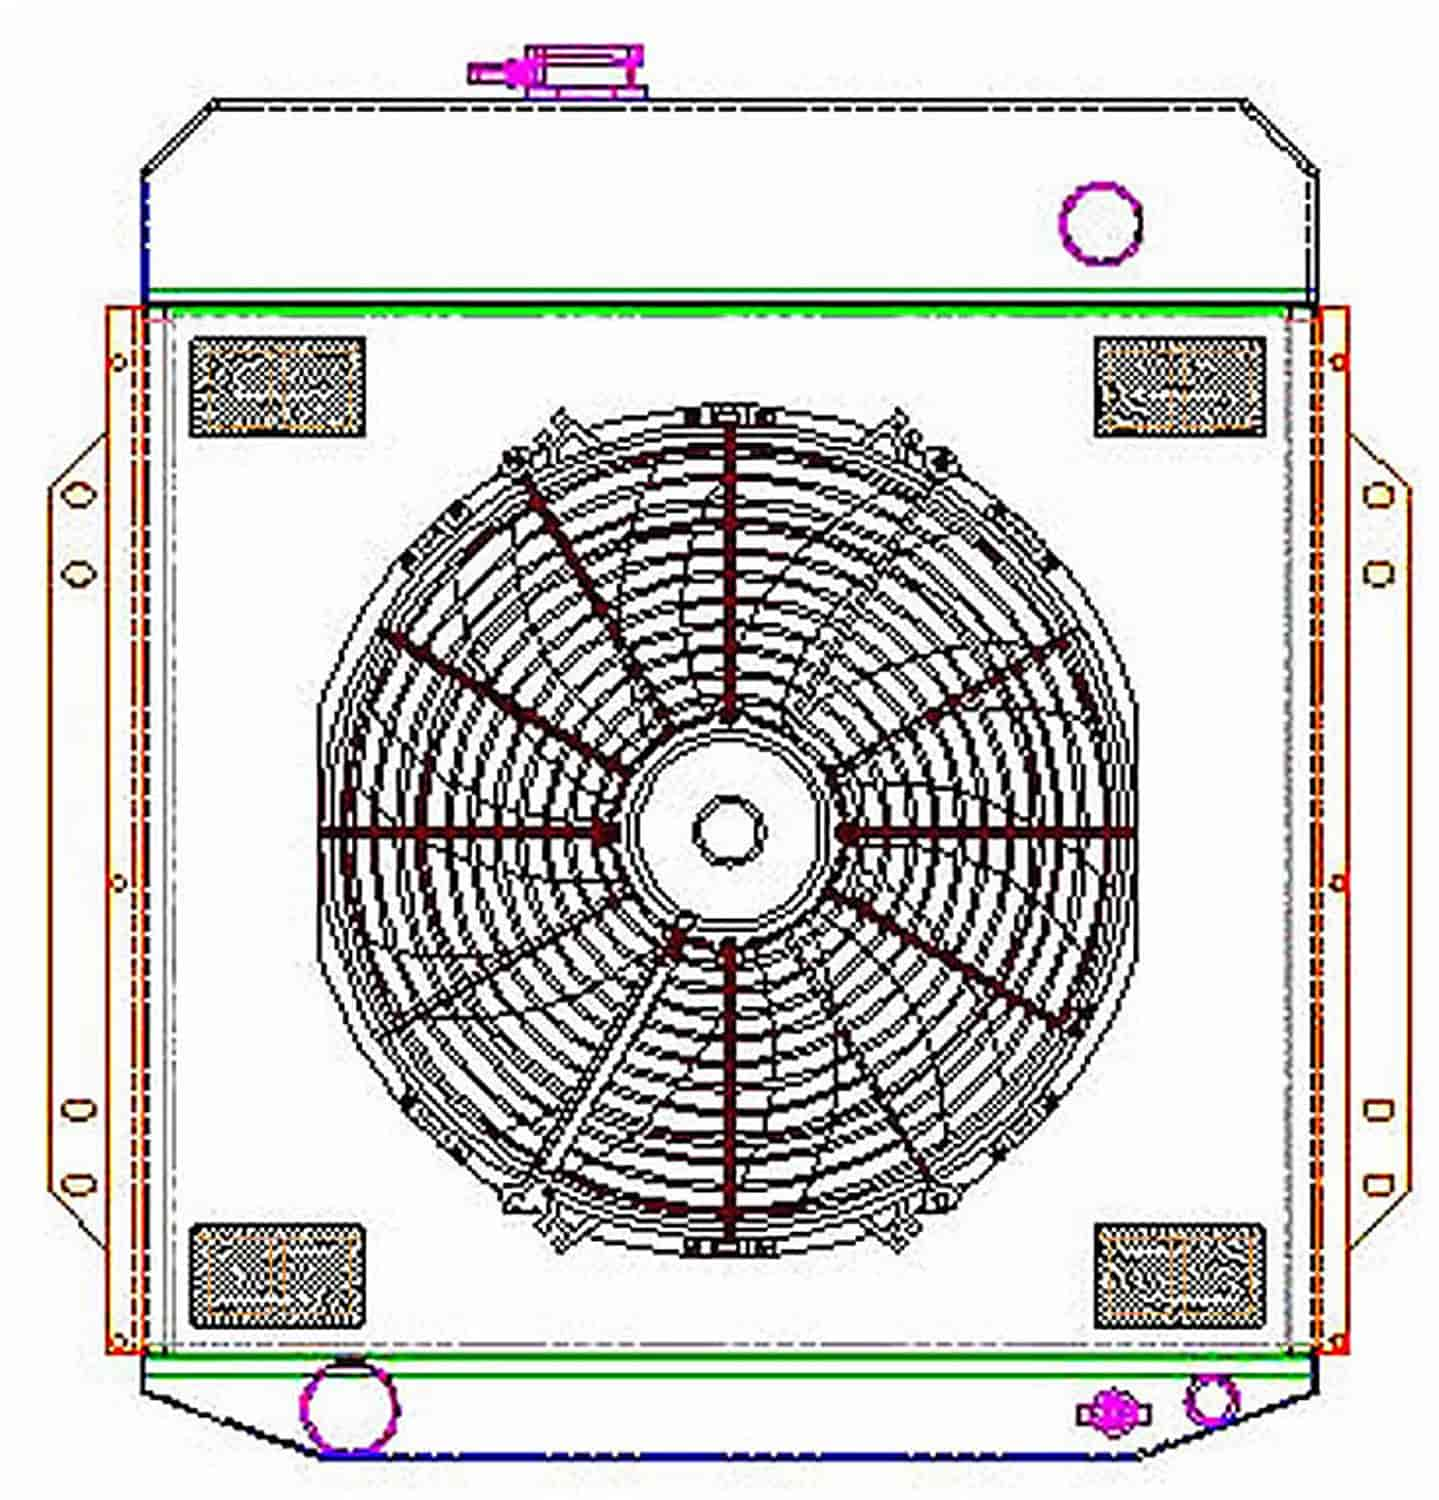 Griffin Radiators ExactFit Radiator ComboUnit for 1953-1956 Ford Truck on autozone electric fan wiring diagram, mustang electric fan wiring diagram, proform electric fan wiring diagram, imperial electric fan wiring diagram, advance auto parts electric fan wiring diagram, be cool electric fan wiring diagram,